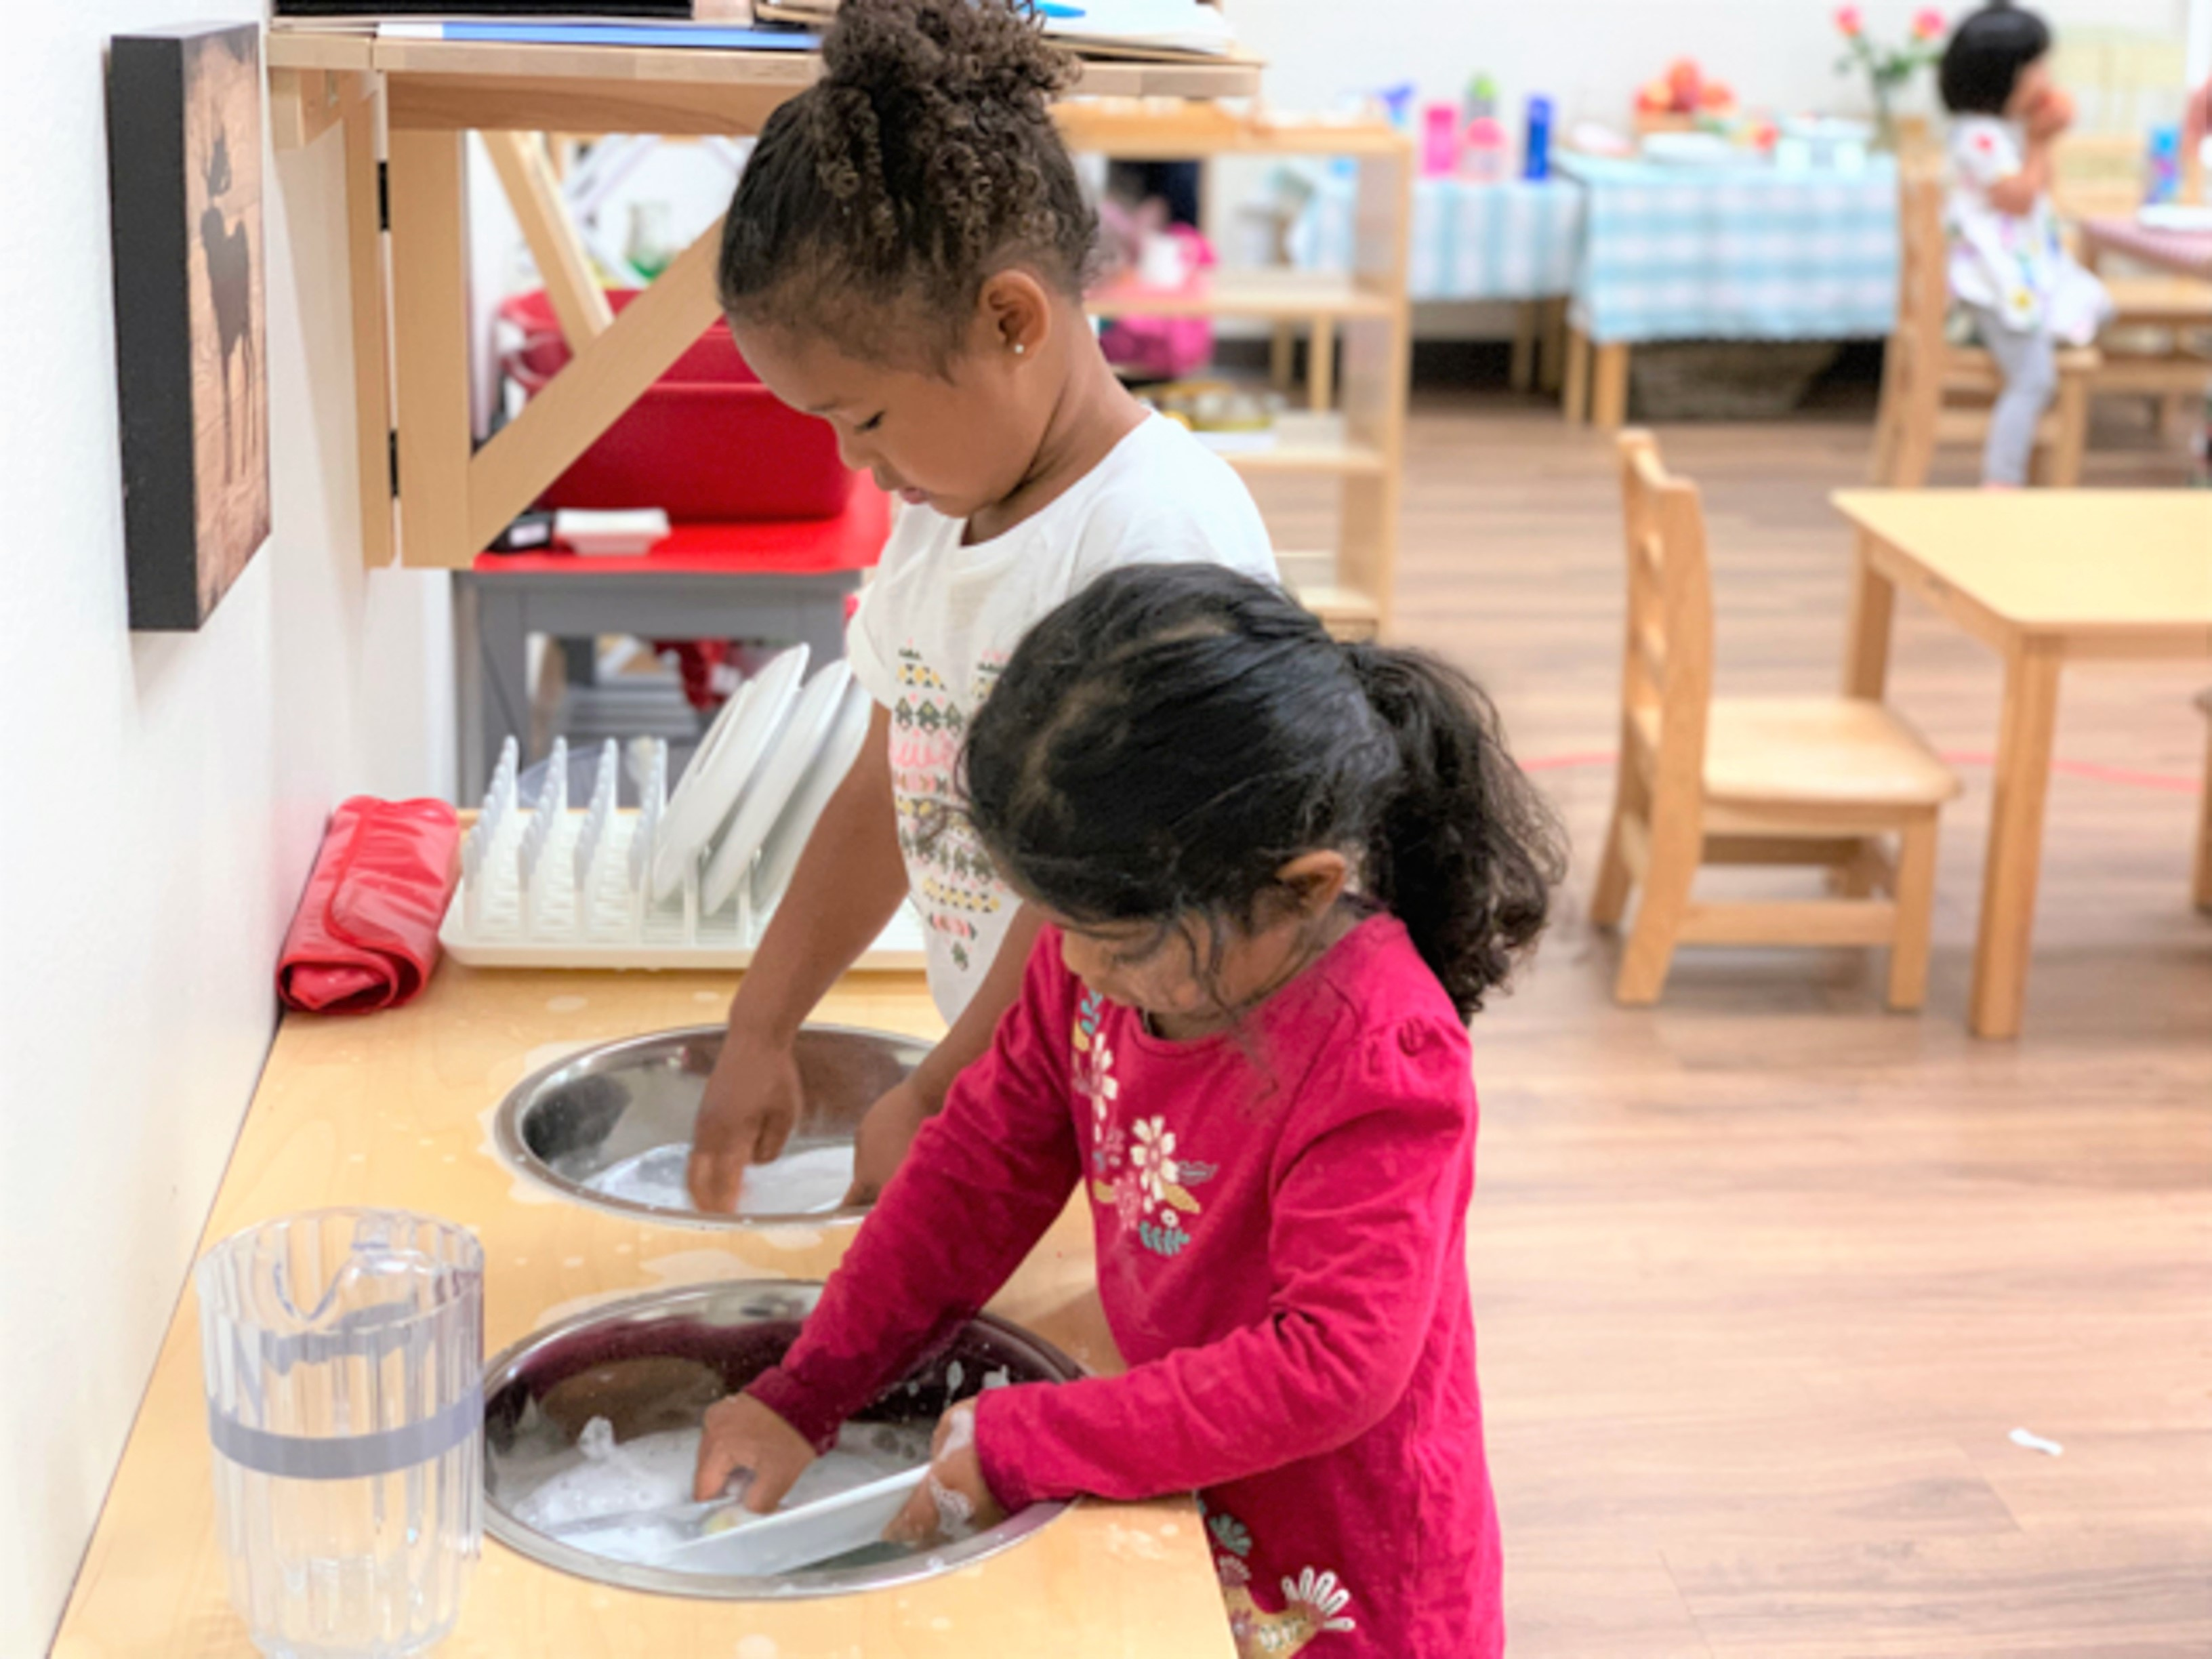 diversity and mixed age groups in a Montessori class allow an older child and younger child to learn from each other while washing dishes